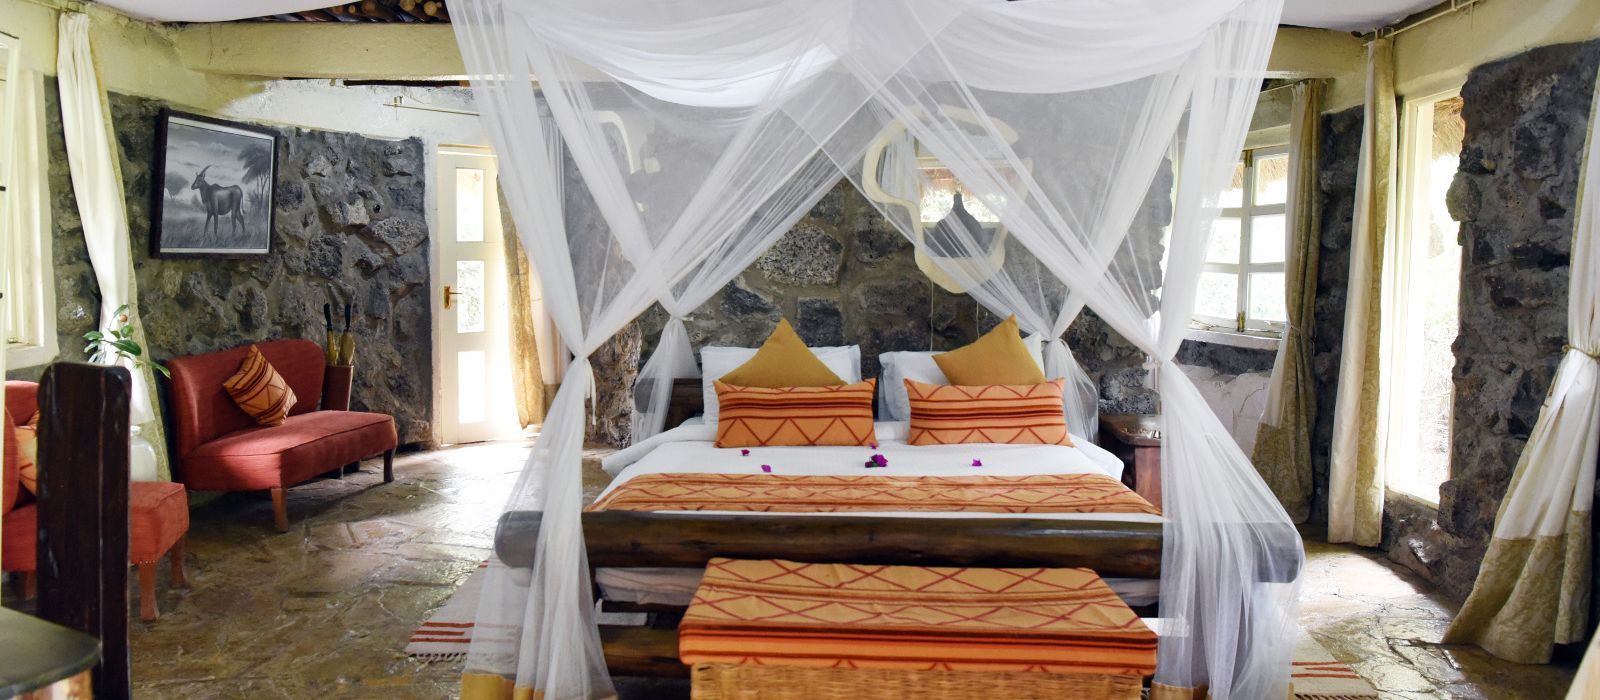 Hotel Mbweha Safari Camp Kenia